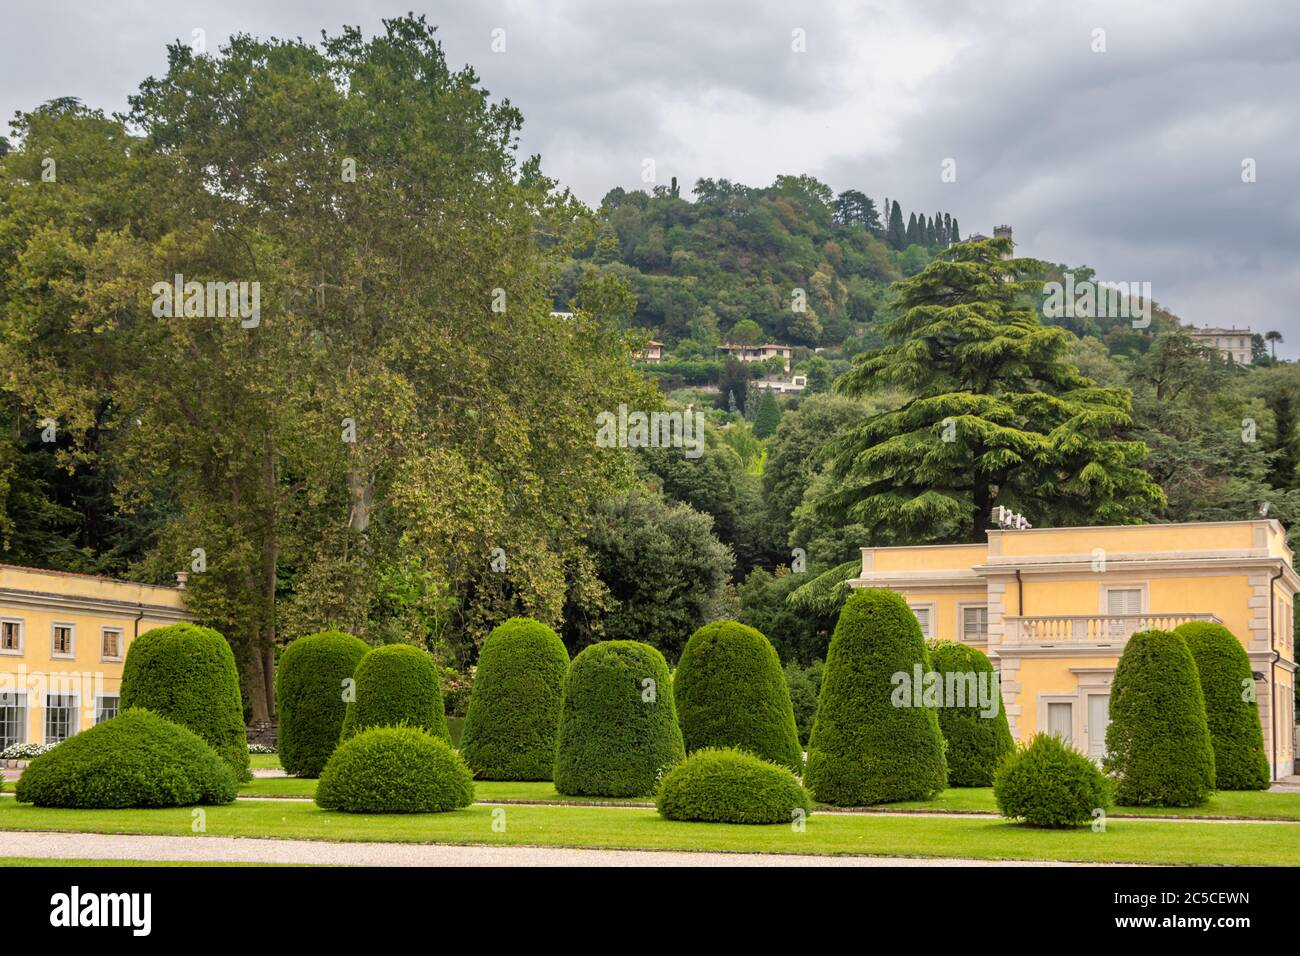 View Of Green Topiary Garden Evergreen Shrubs Trimmed With Different Shapes Creative Gardening Villa Olmo Como Italy Stock Photo Alamy